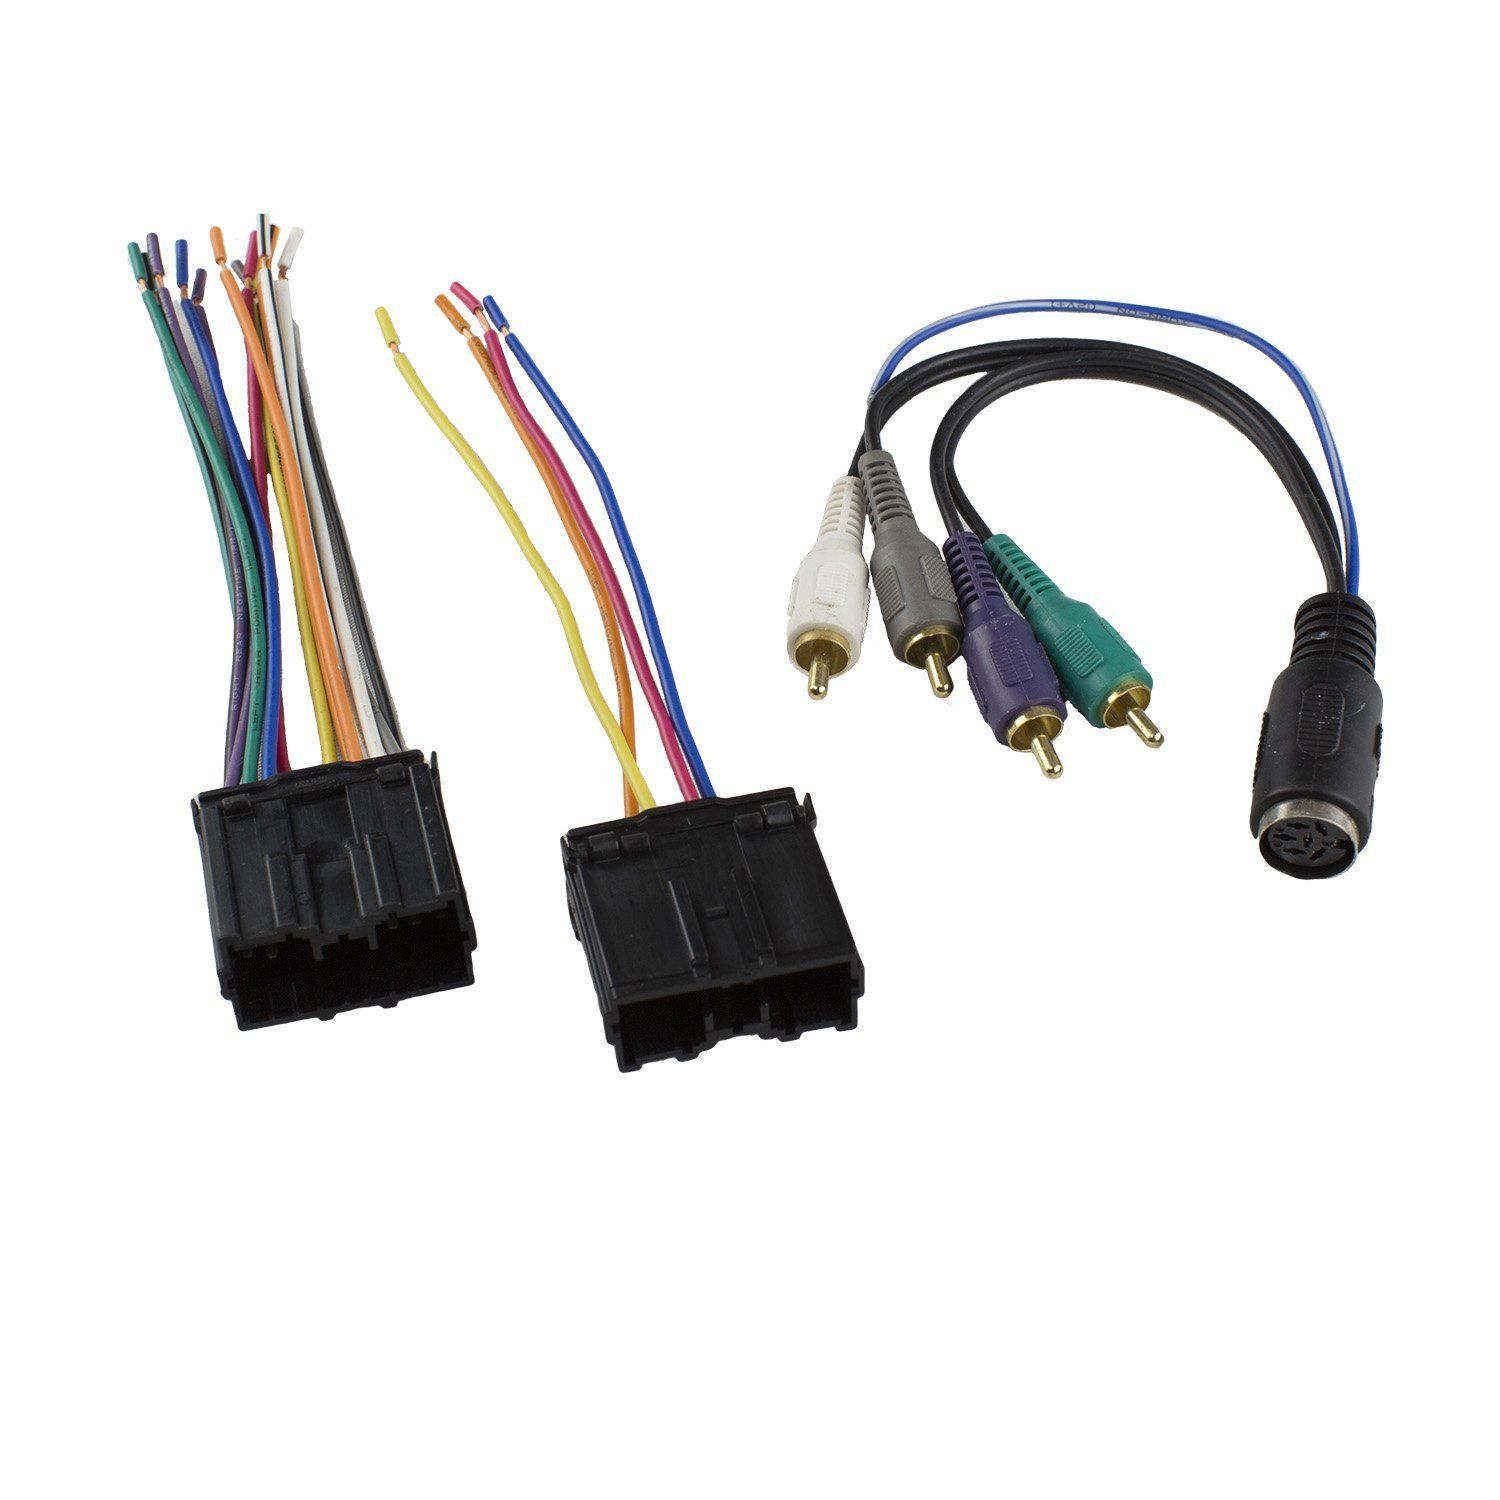 hight resolution of novosonics mif 7004 wiring harness for mitsubishi 4 speaker with amp integration 1994 2007 fits existing connector in your vehicle no cutting existing